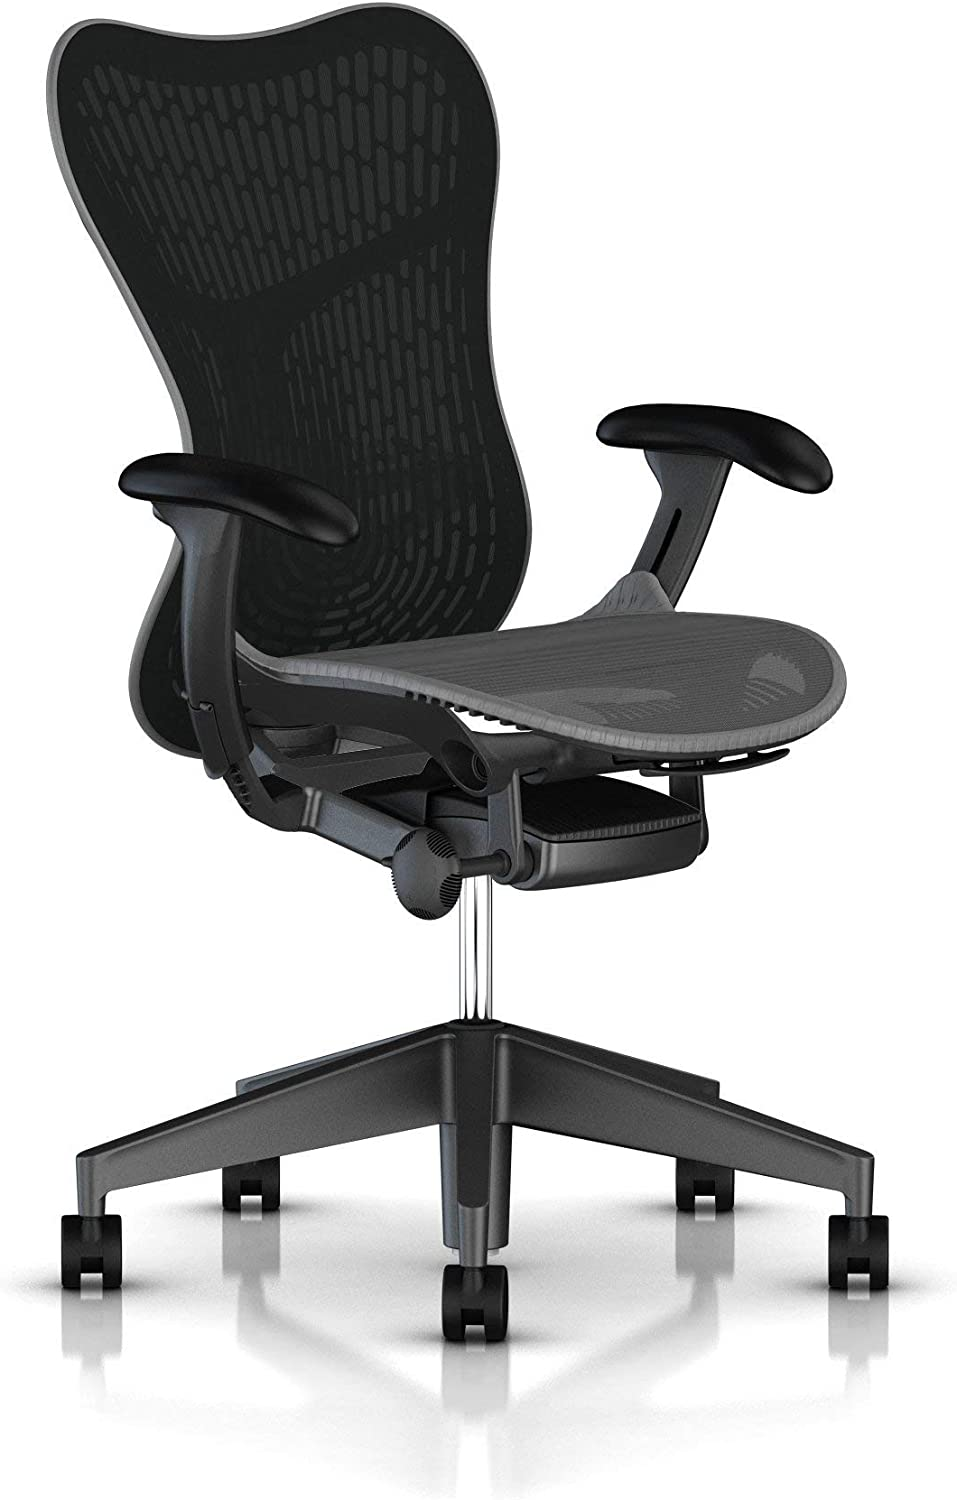 Herman Miller Mirra 2 Task Chair: Tilt Limiter - Adjustable Seat - Adjustable Lumbar Support - Butterfly Back - Adjustable Arms - Graphite Frame/Base - Hard Floor Casters (Renewed)